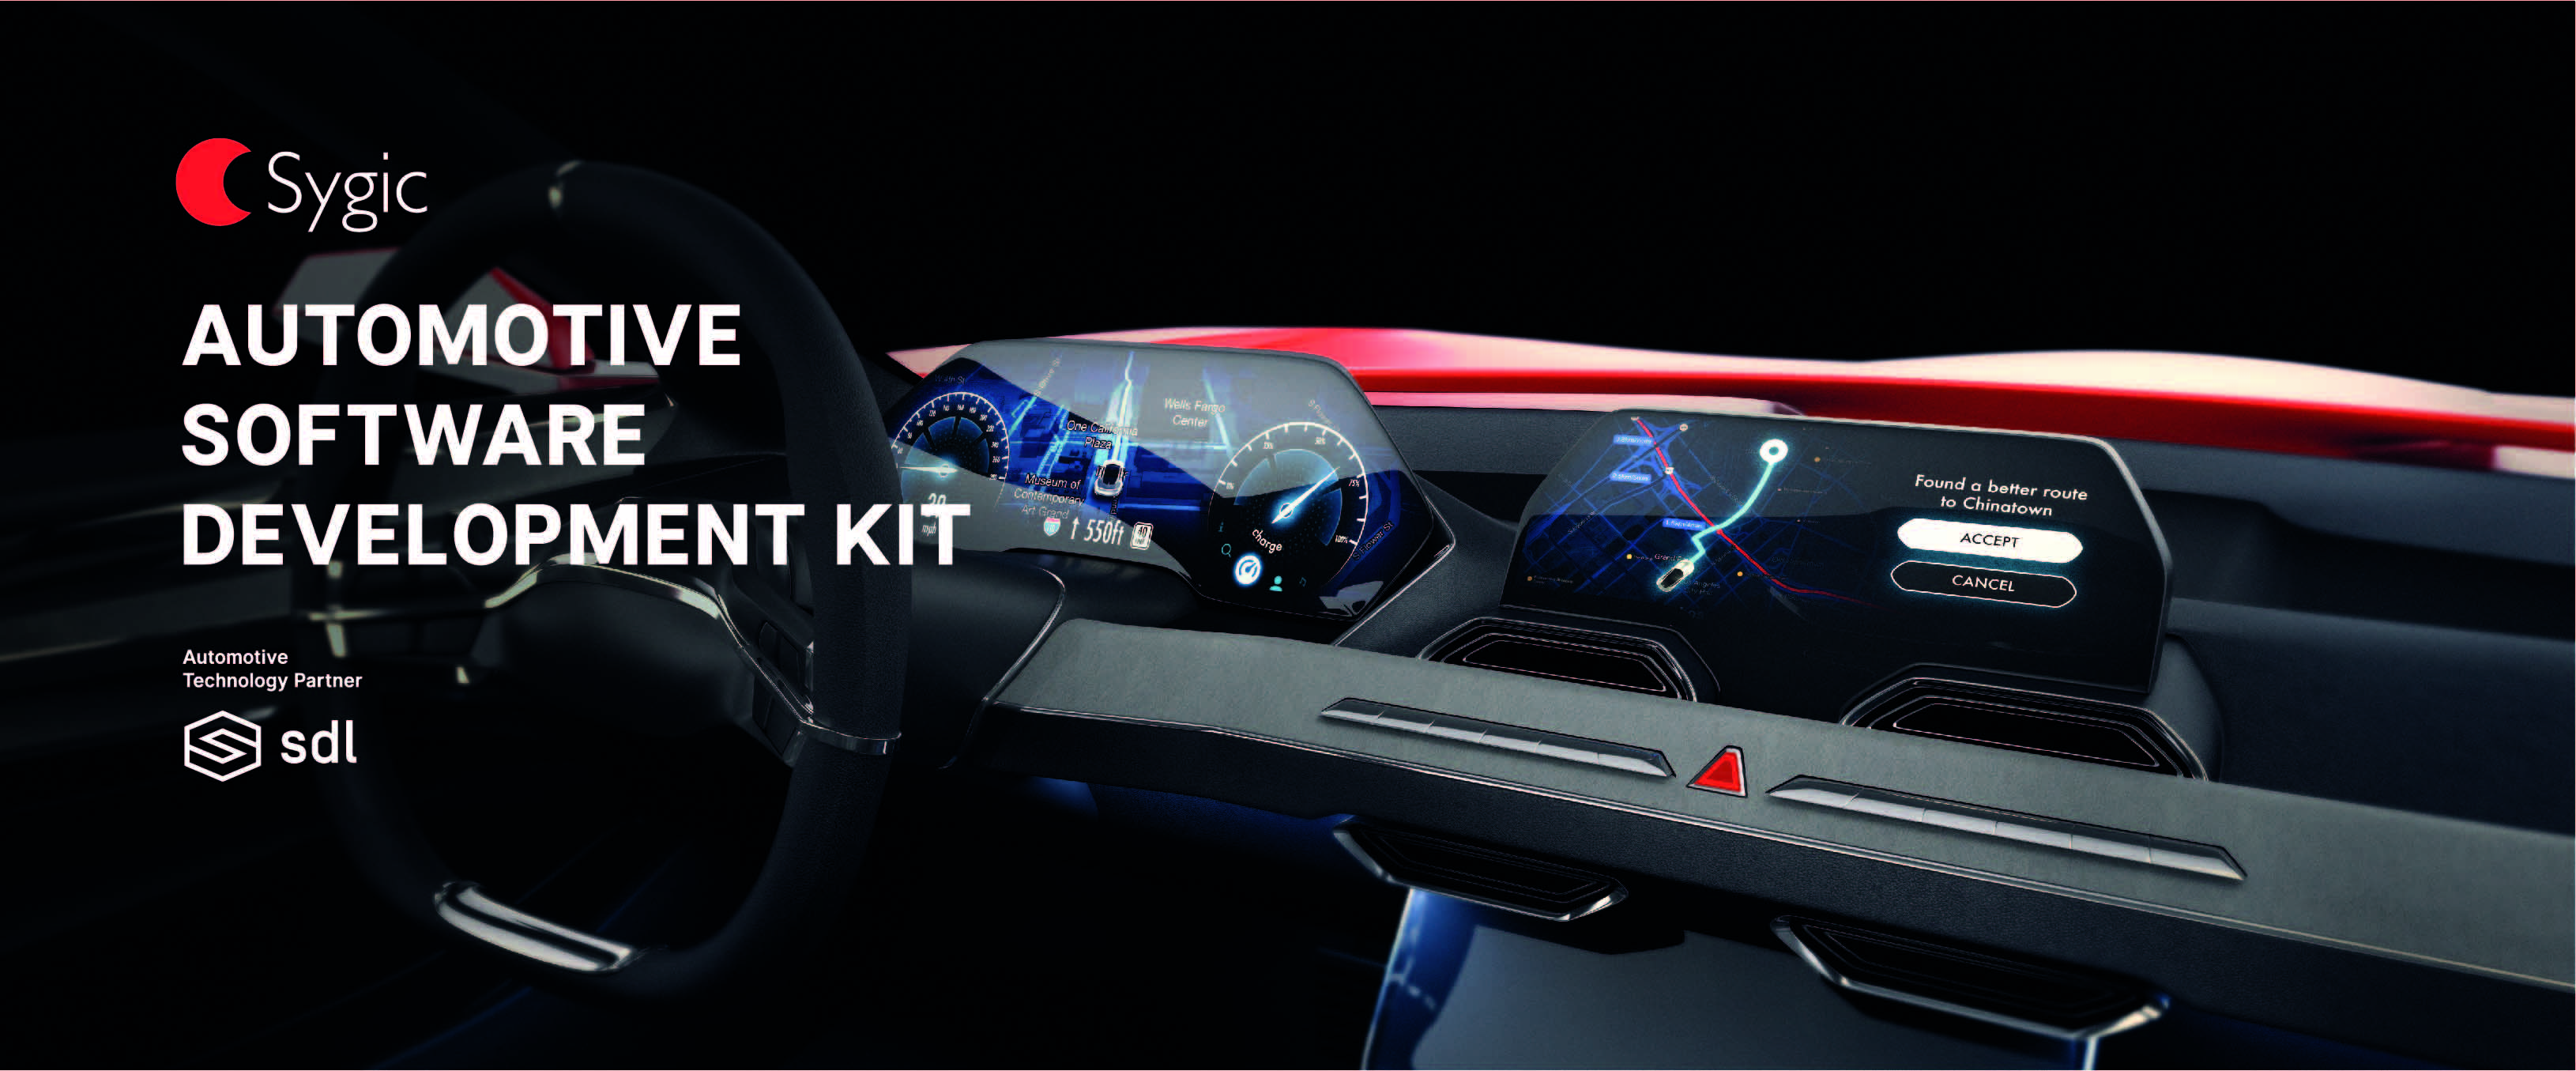 New Automotive SDK from Sygic Brings Mobile Apps Experience to Car's Infotainment Units